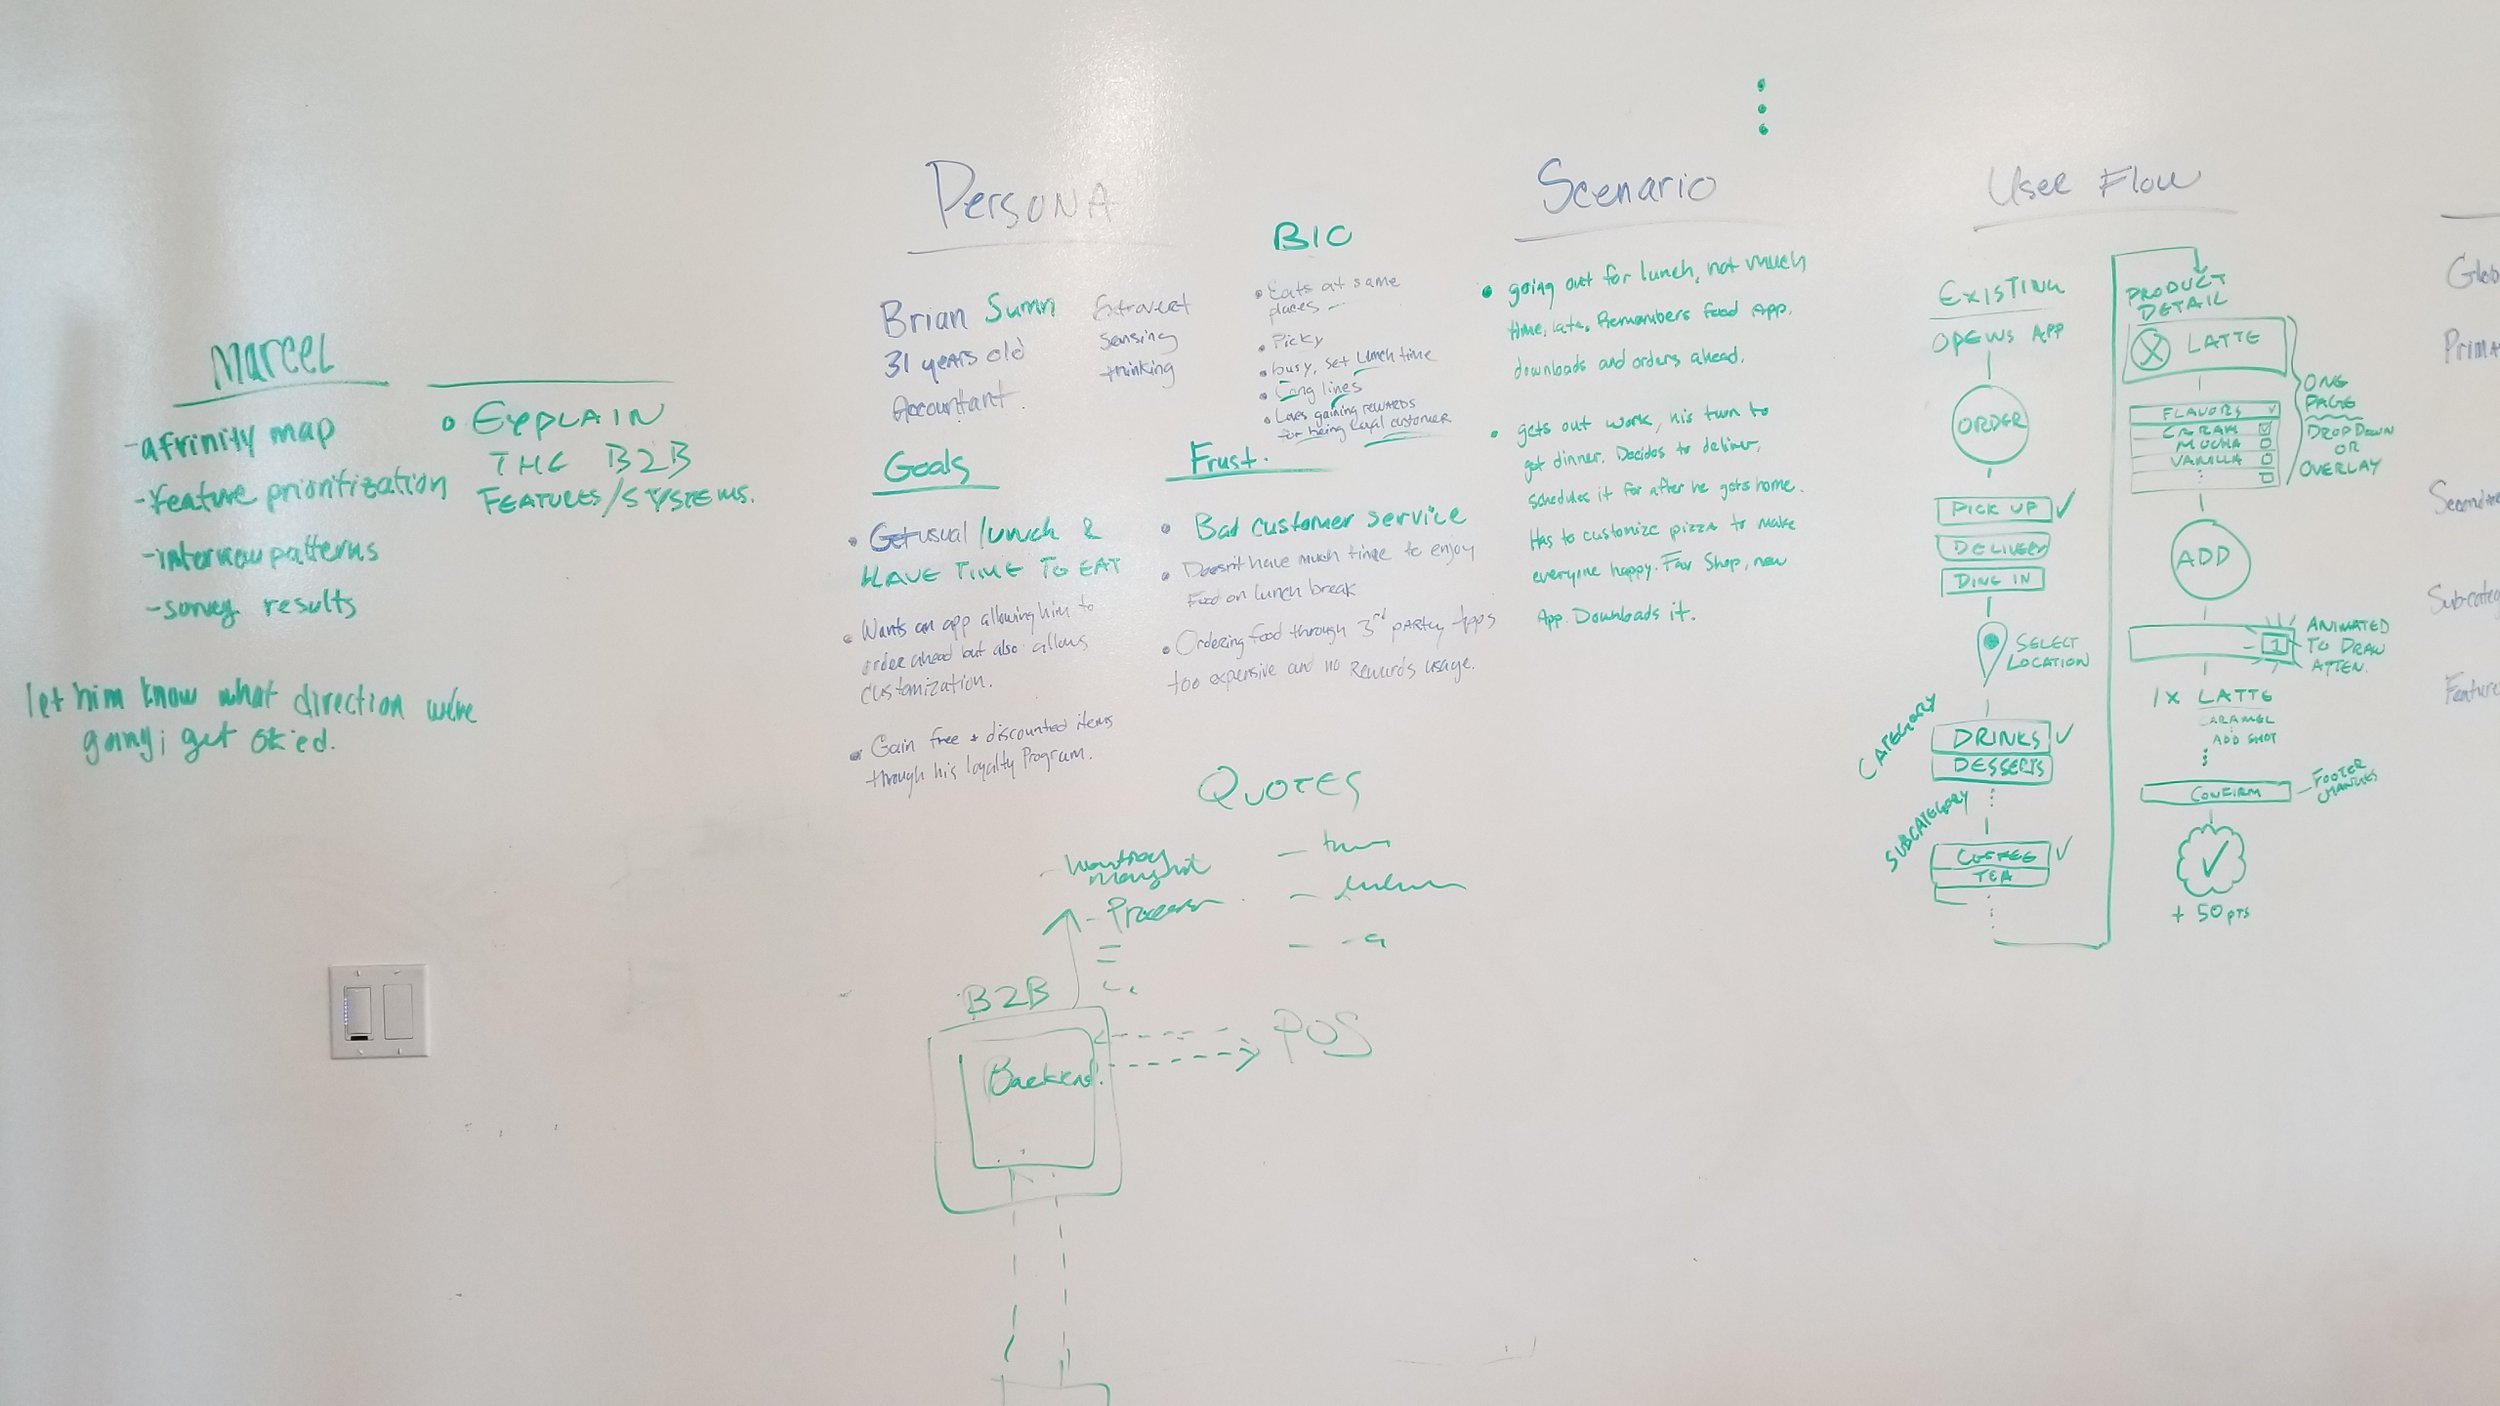 Team whiteboard session